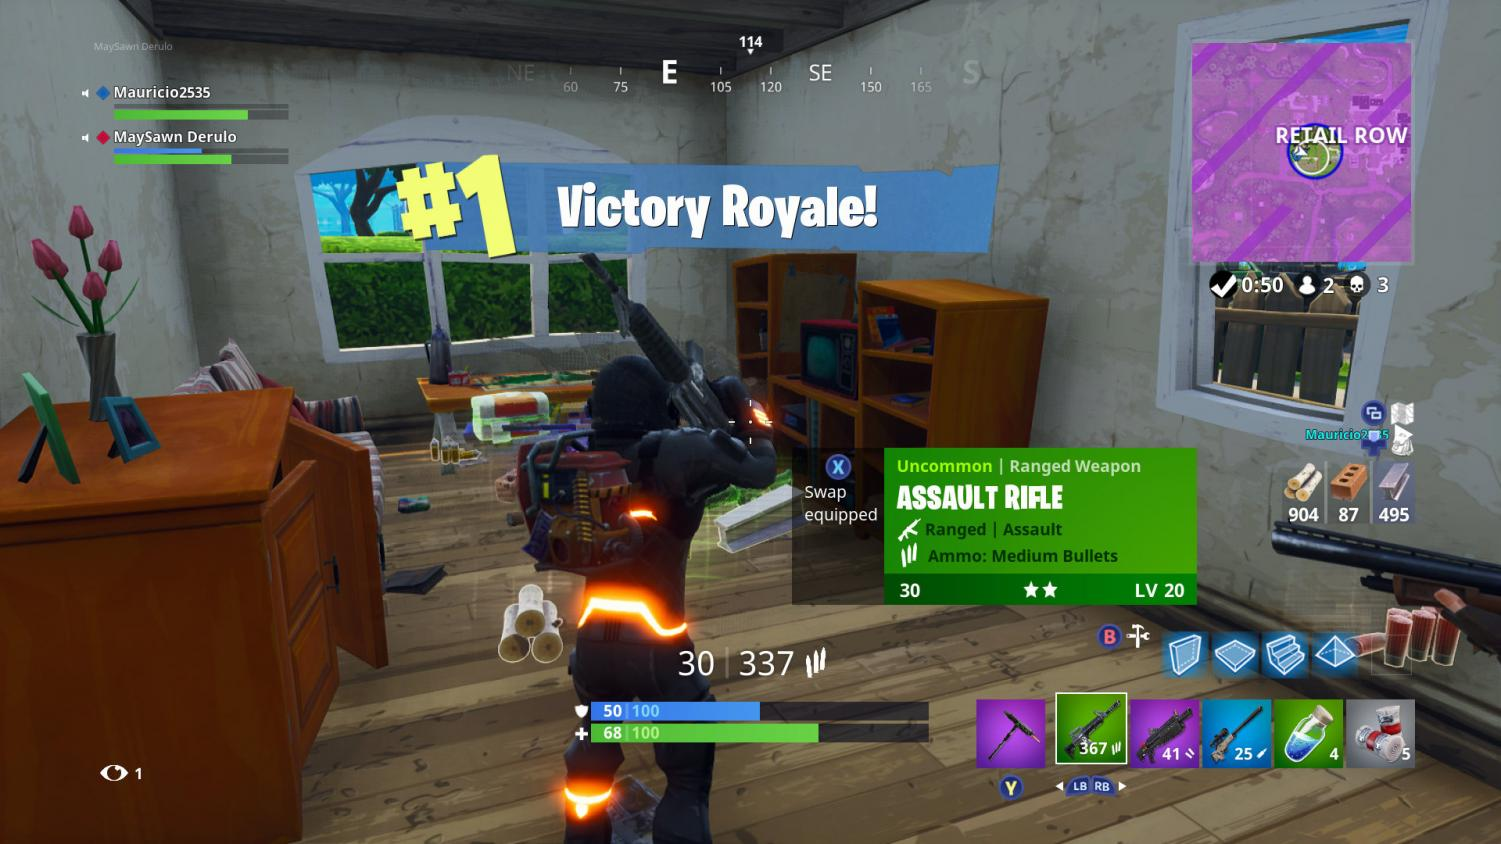 A screen capture shows a victory during a Fortnite battle.